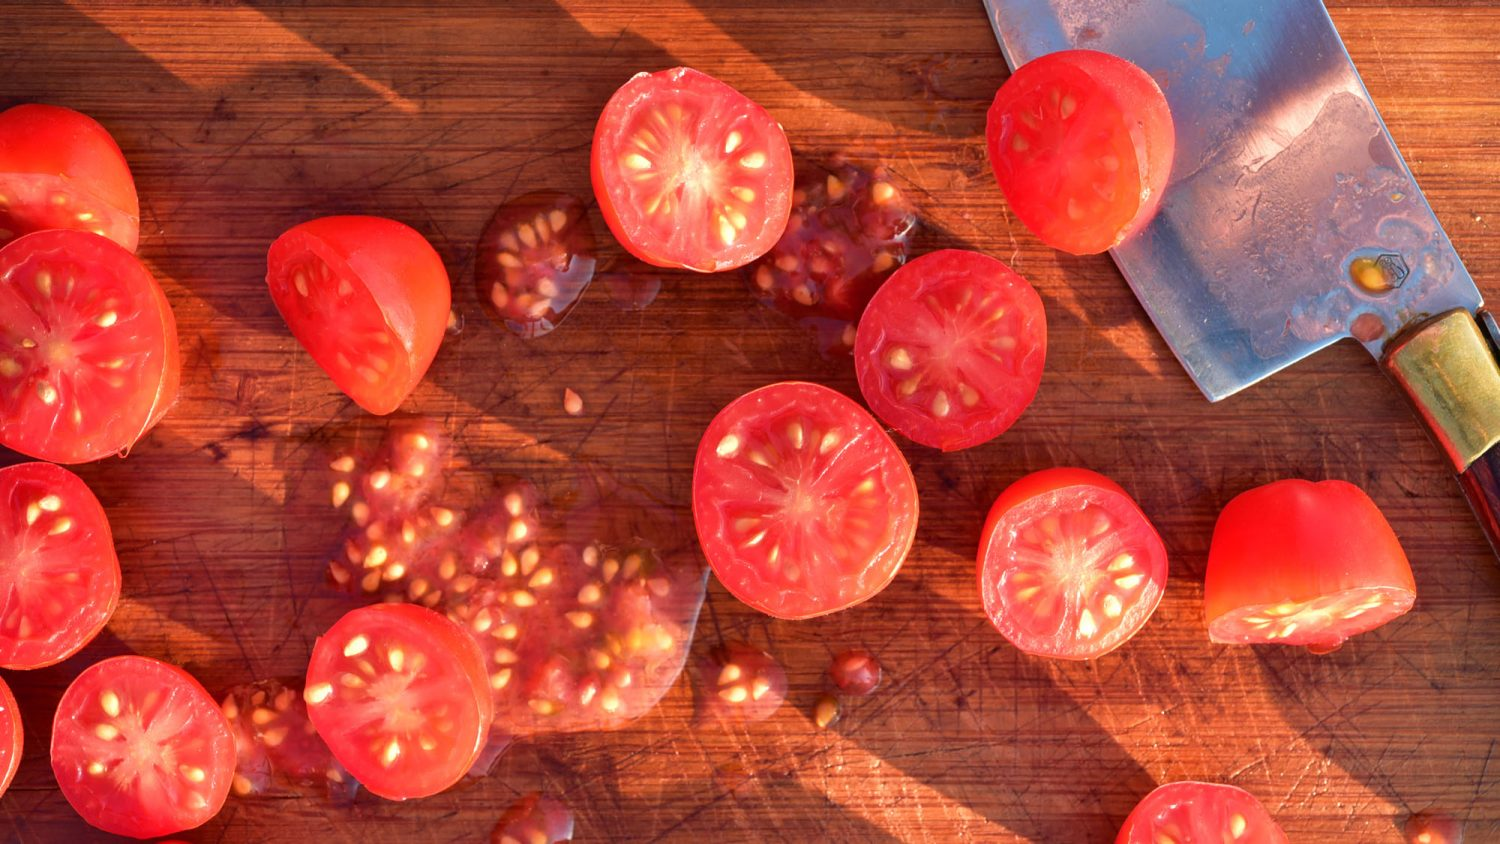 Overhead view of grape tomatoes